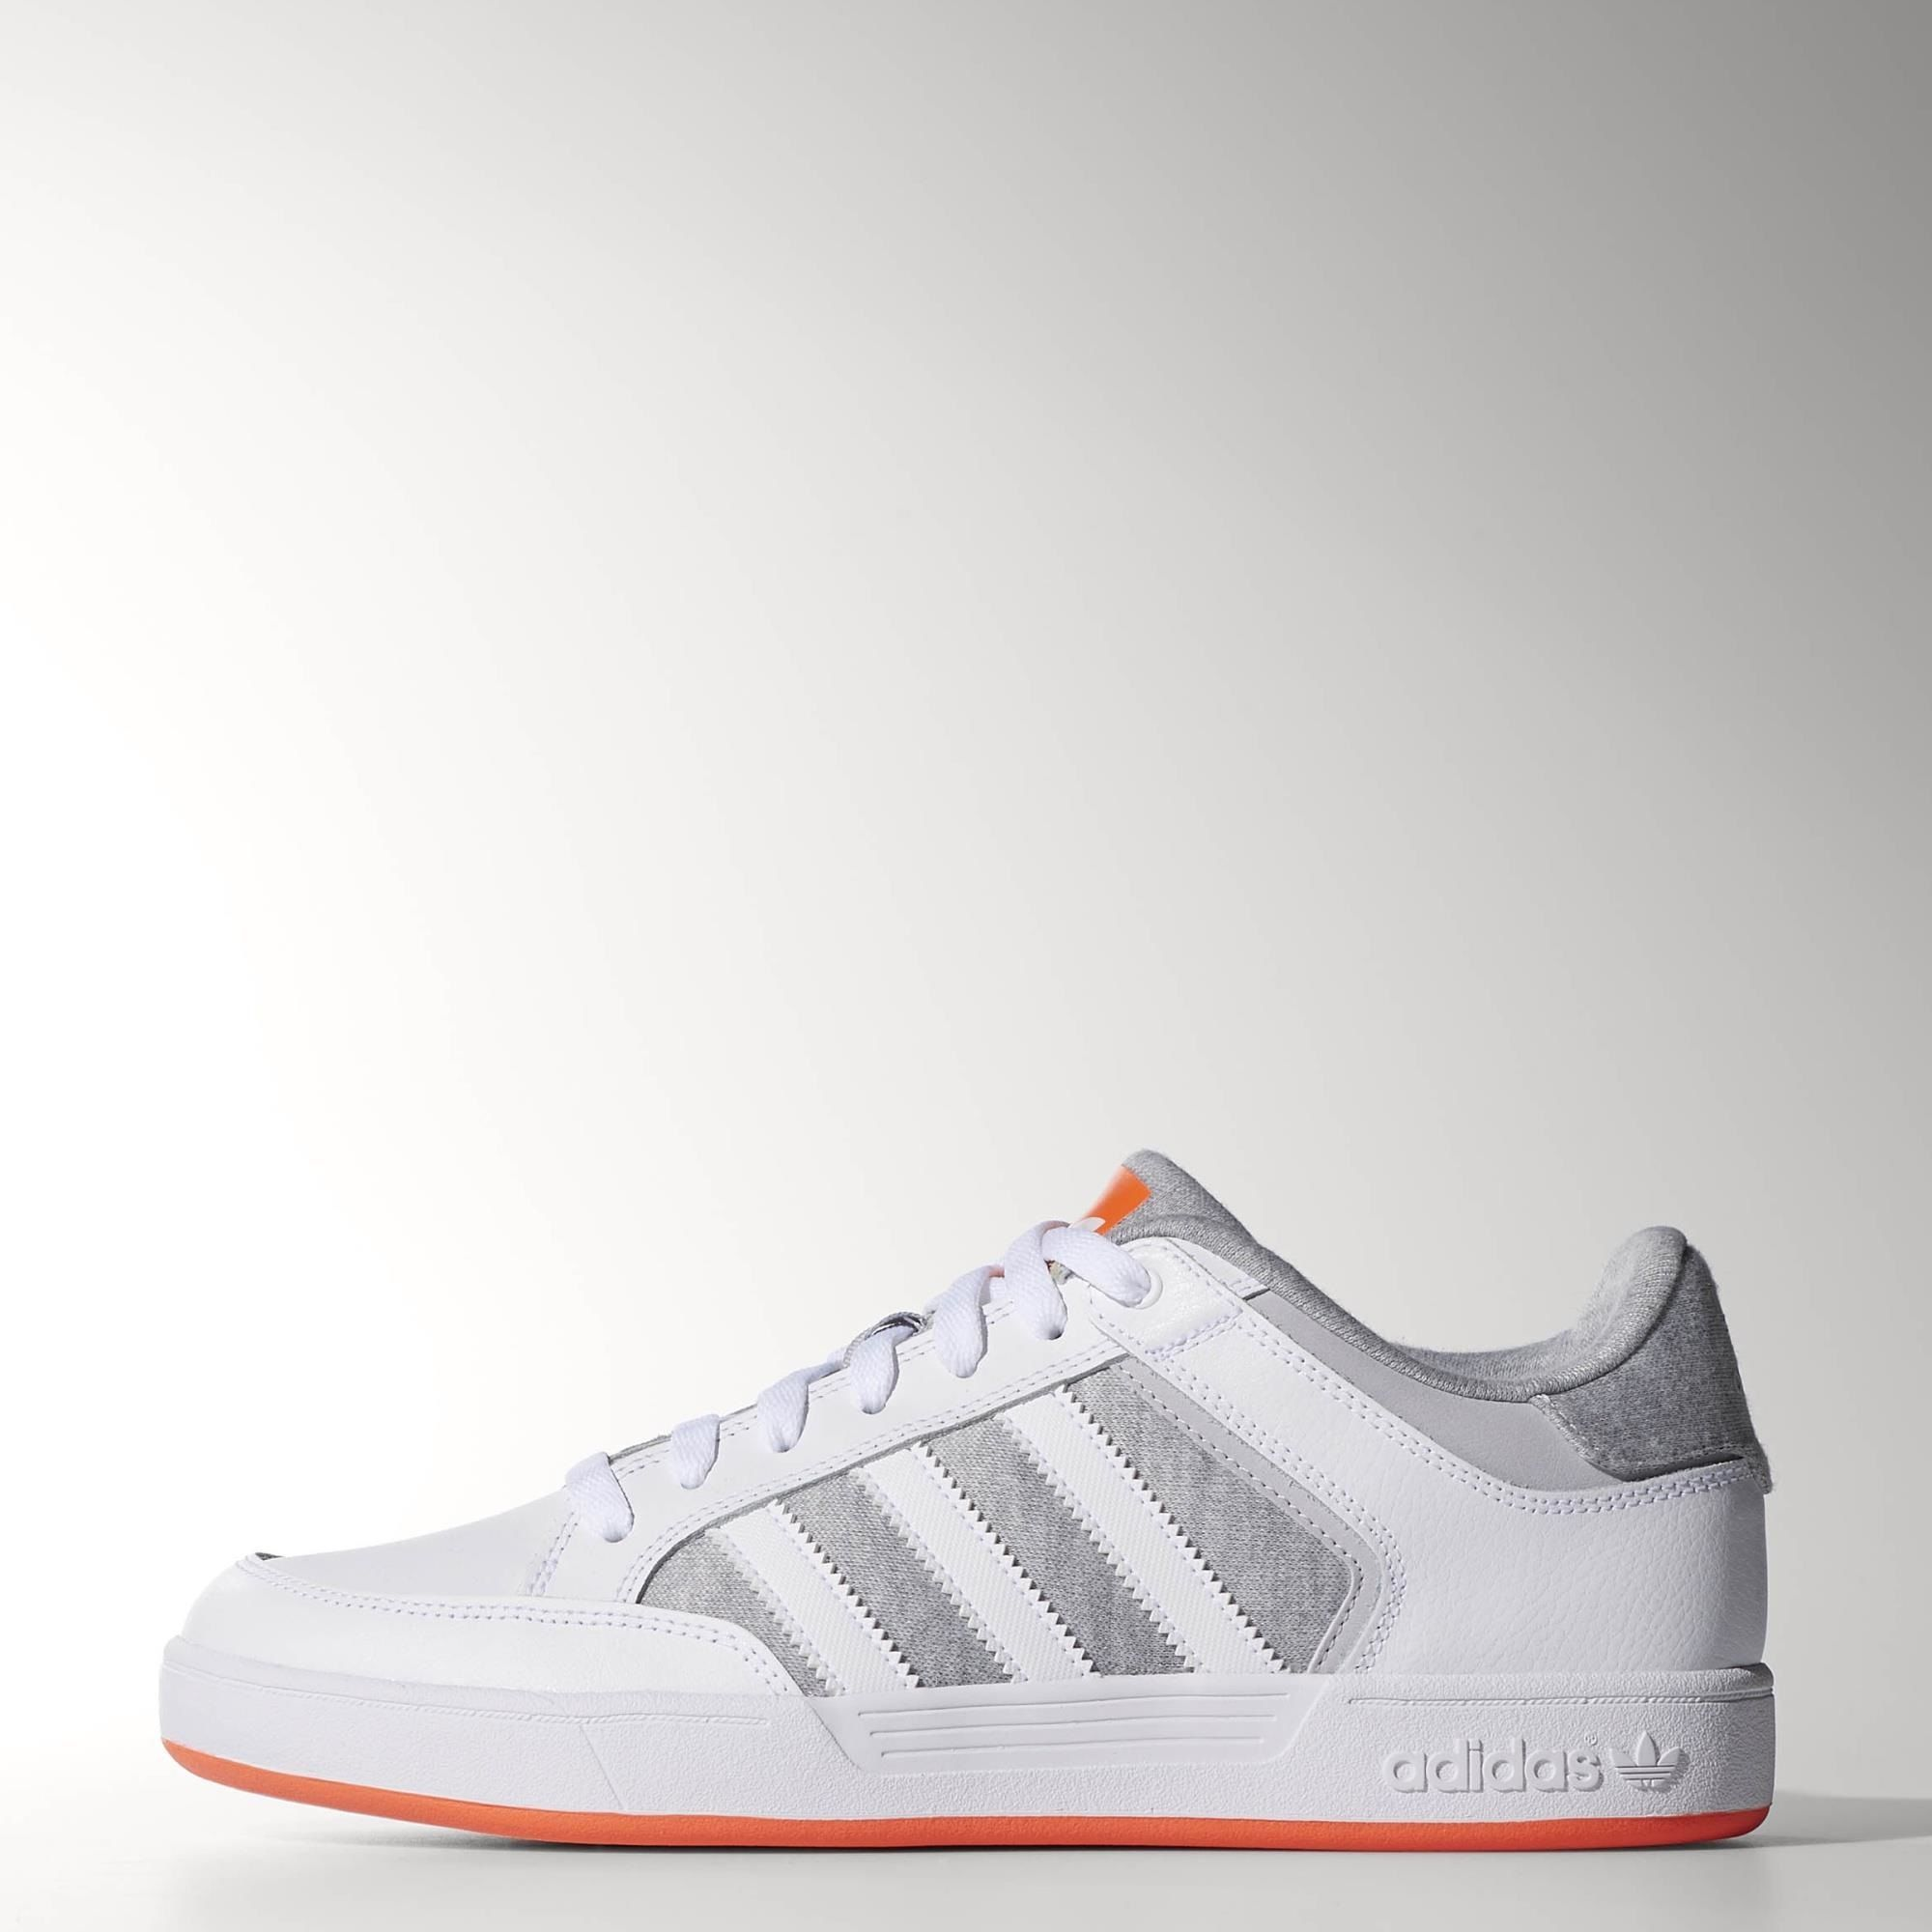 adidas Varial Low Shoes | Shoes, Adidas, Sneakers